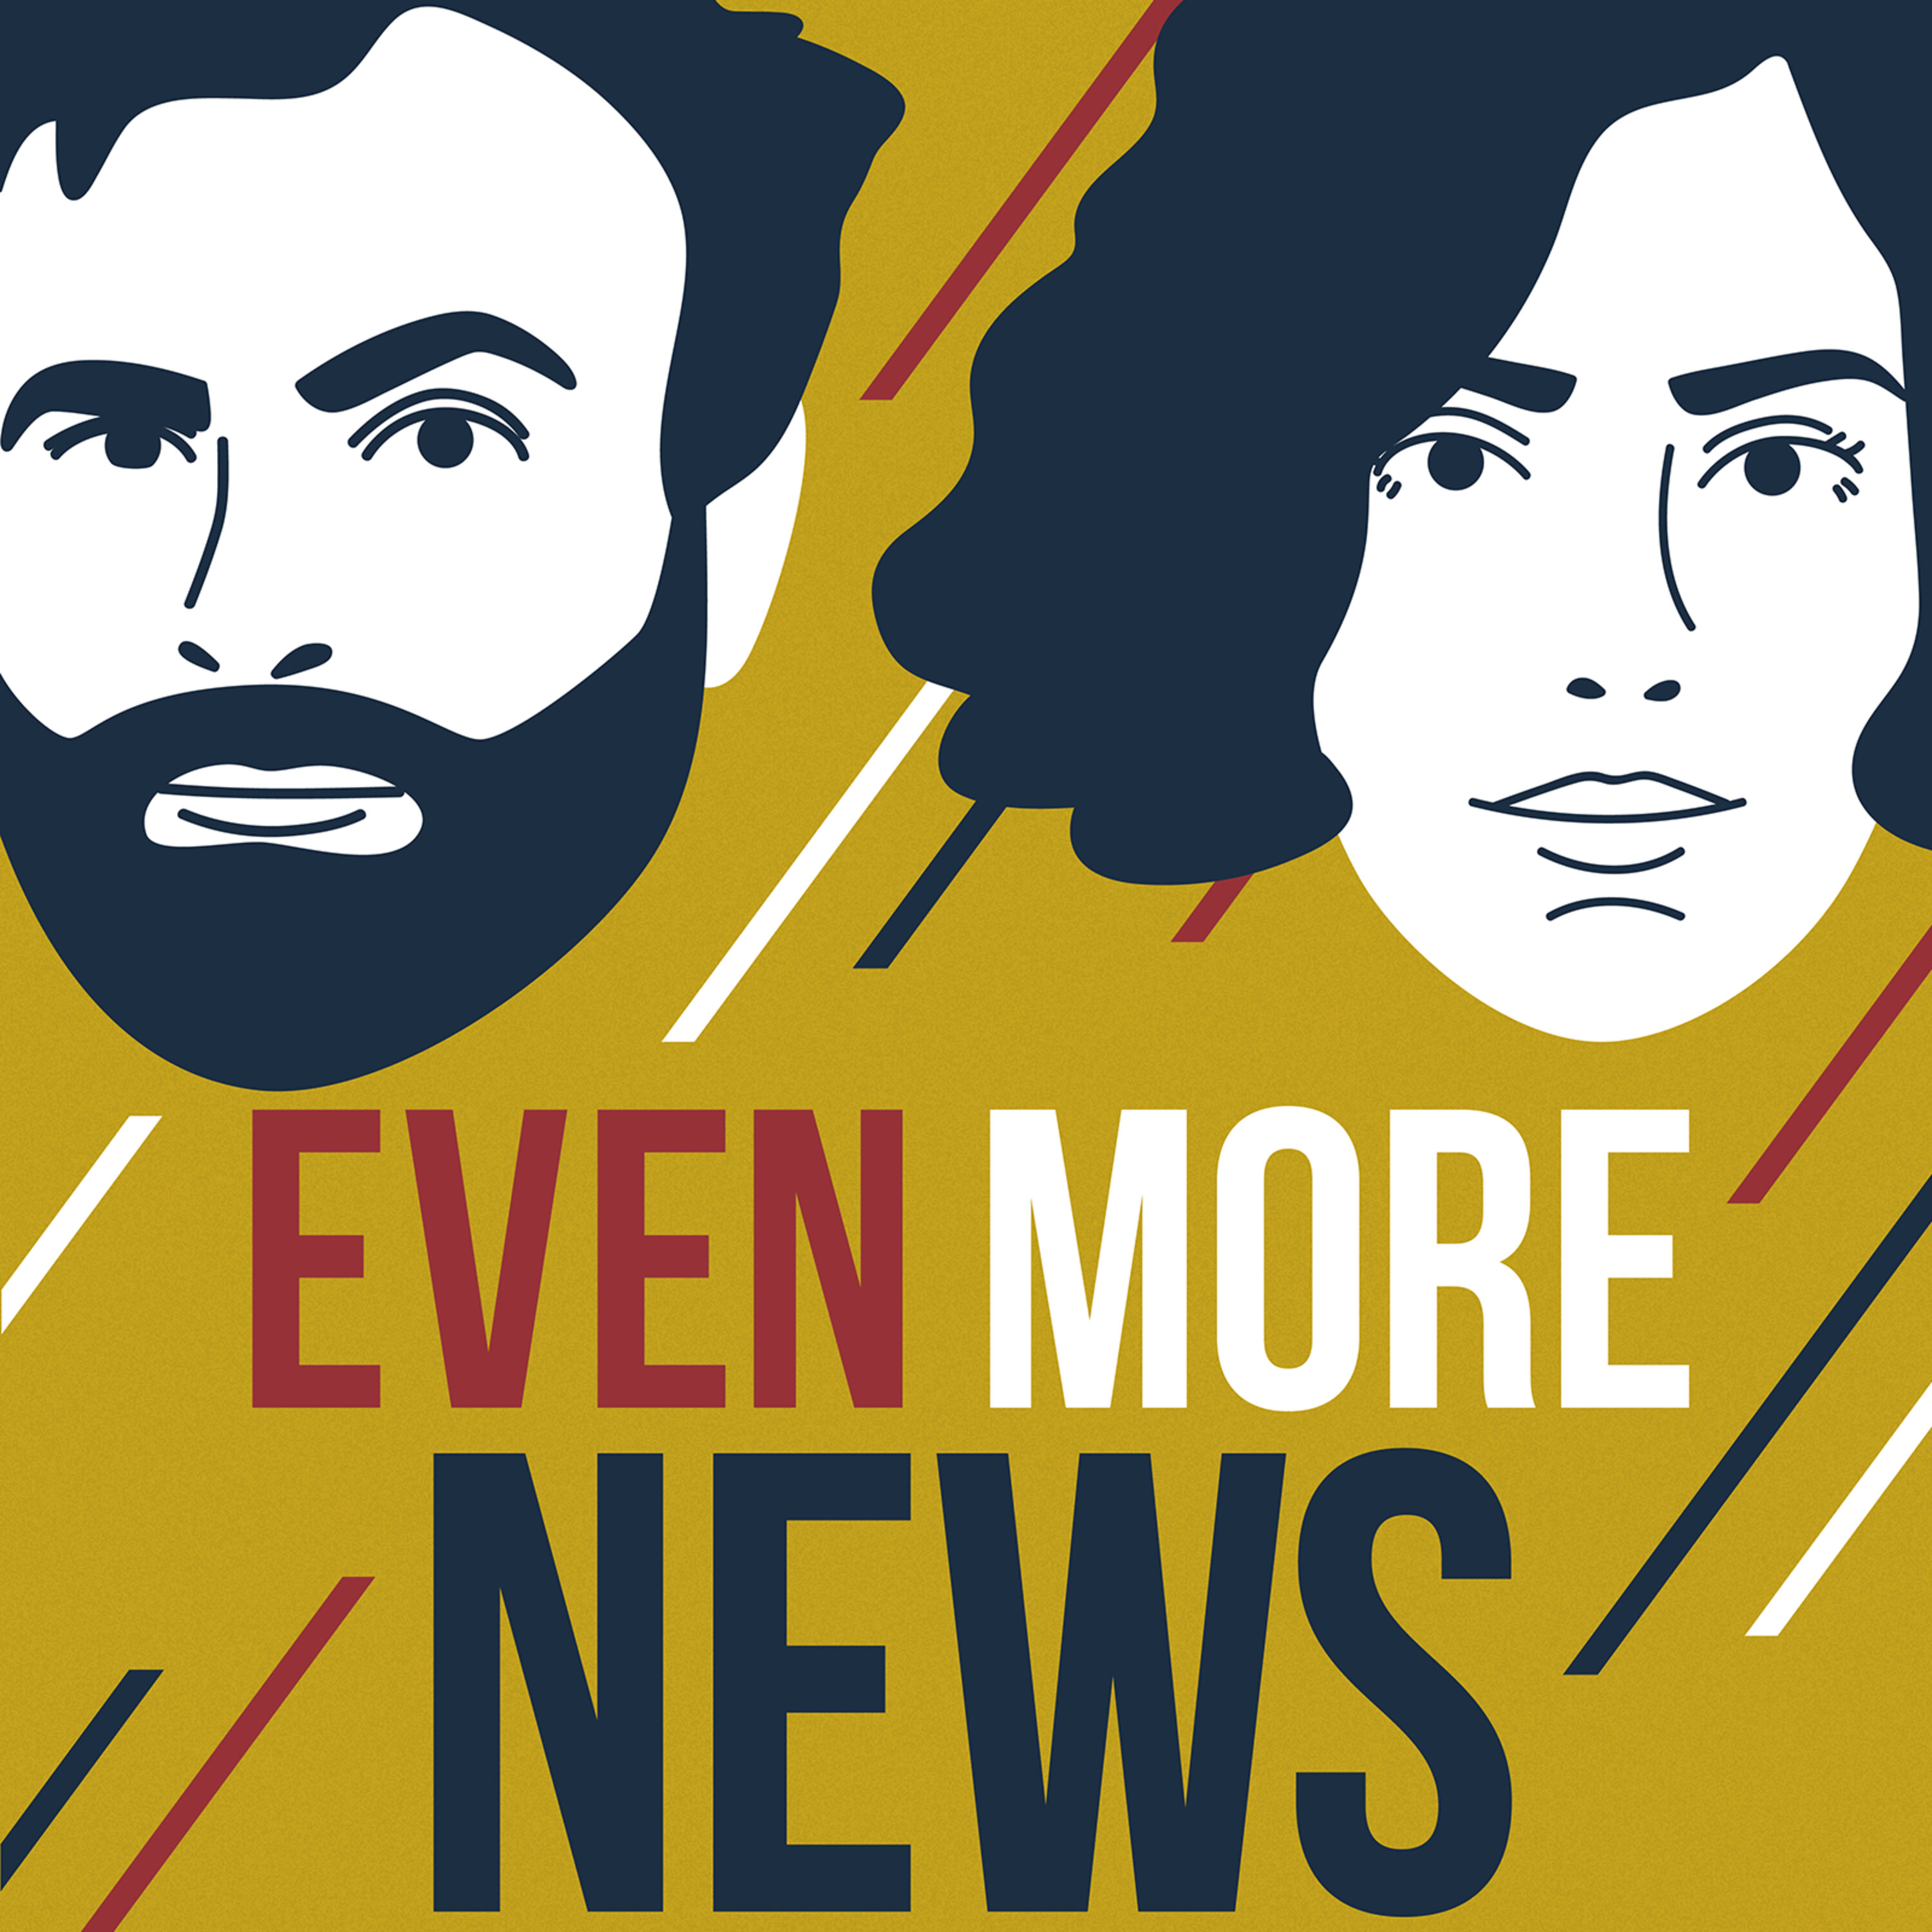 Evictions, Banning Homelessness, Nancy Pelosi and Even More News with Soren Bowie